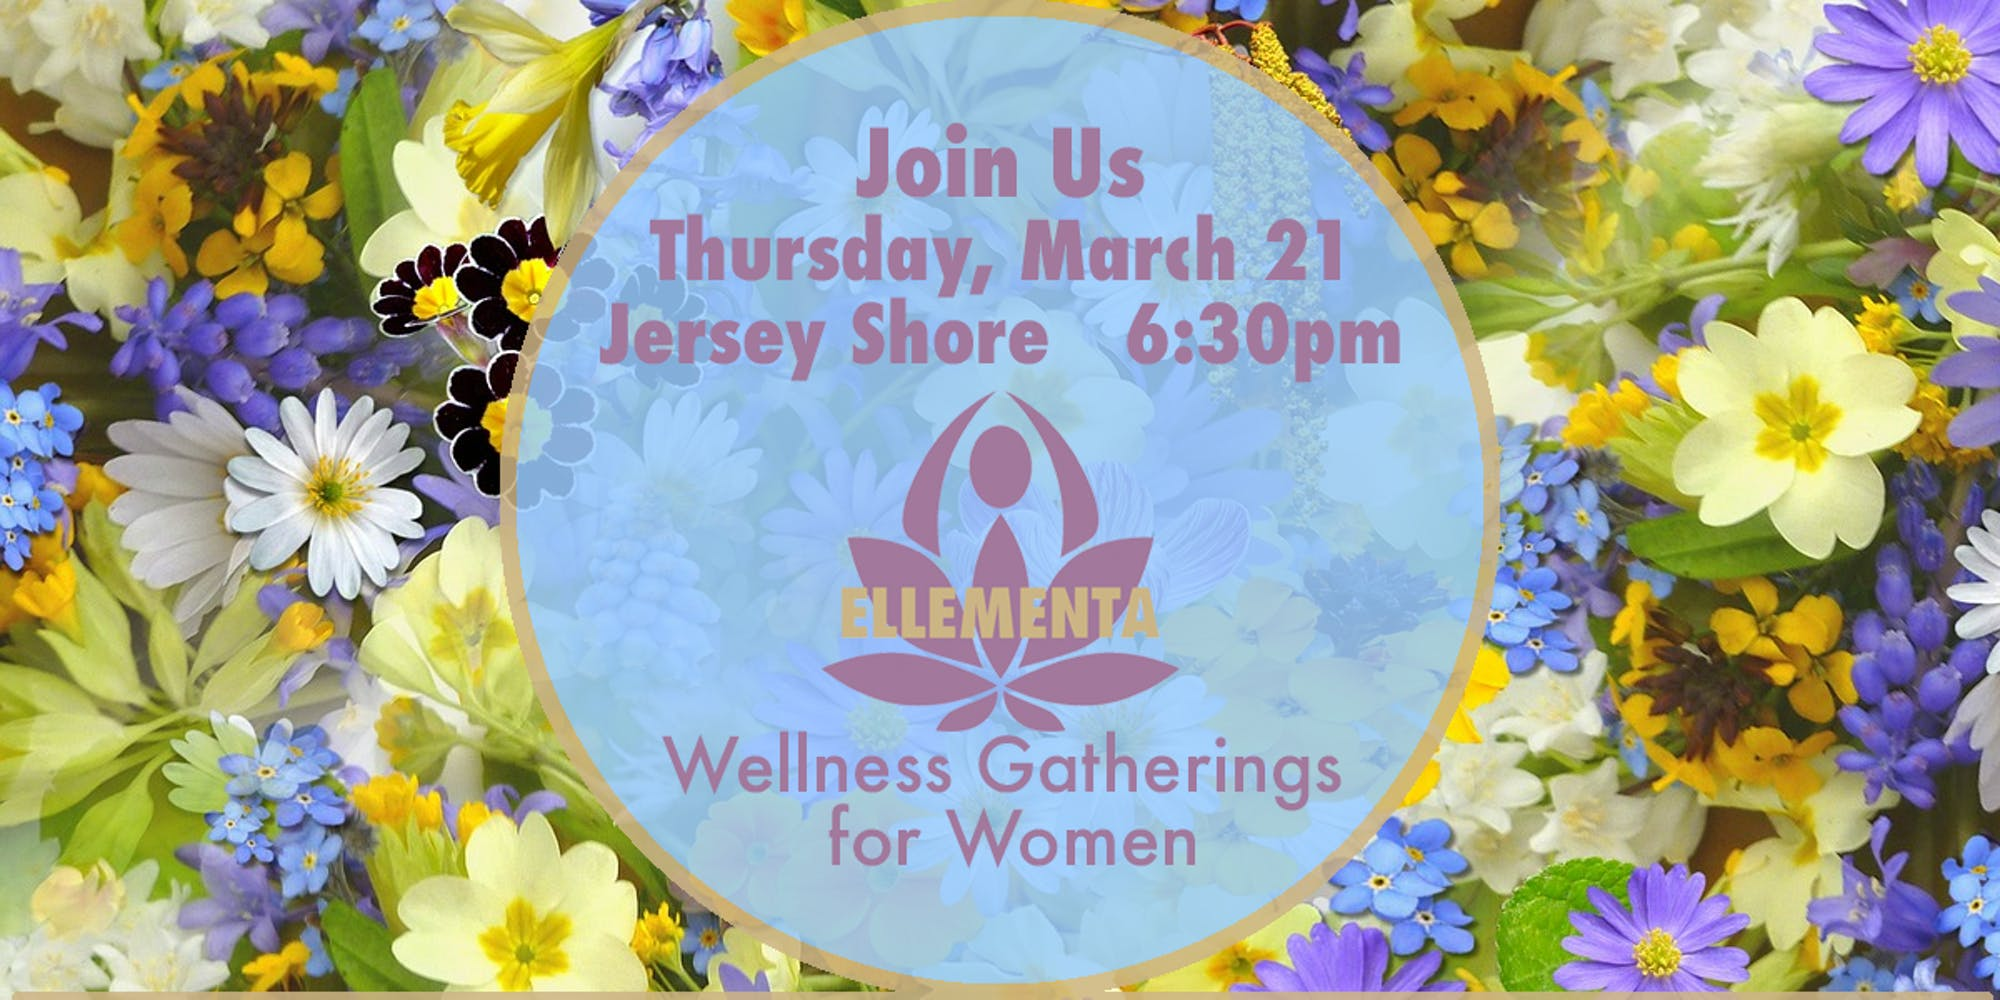 Ellementa Jersey Shore: Why Cannabis Works for Women: Cannabinoids